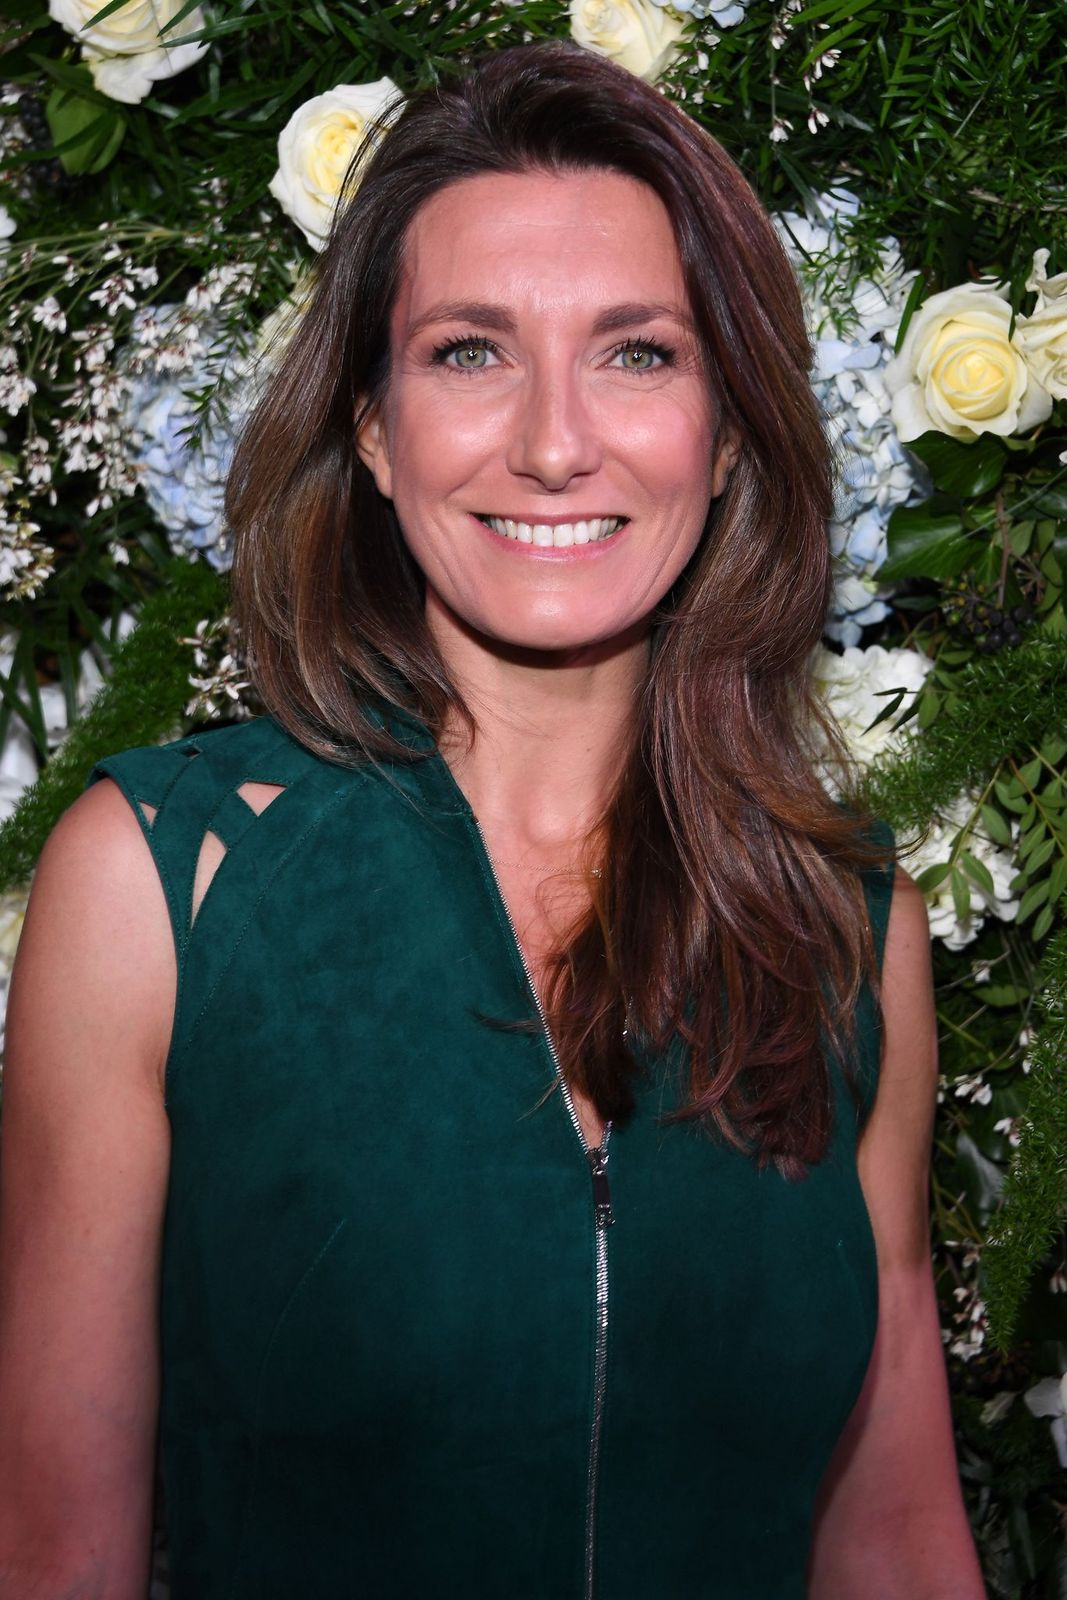 La journaliste Anne-Claire Coudray | Photo : Getty Images